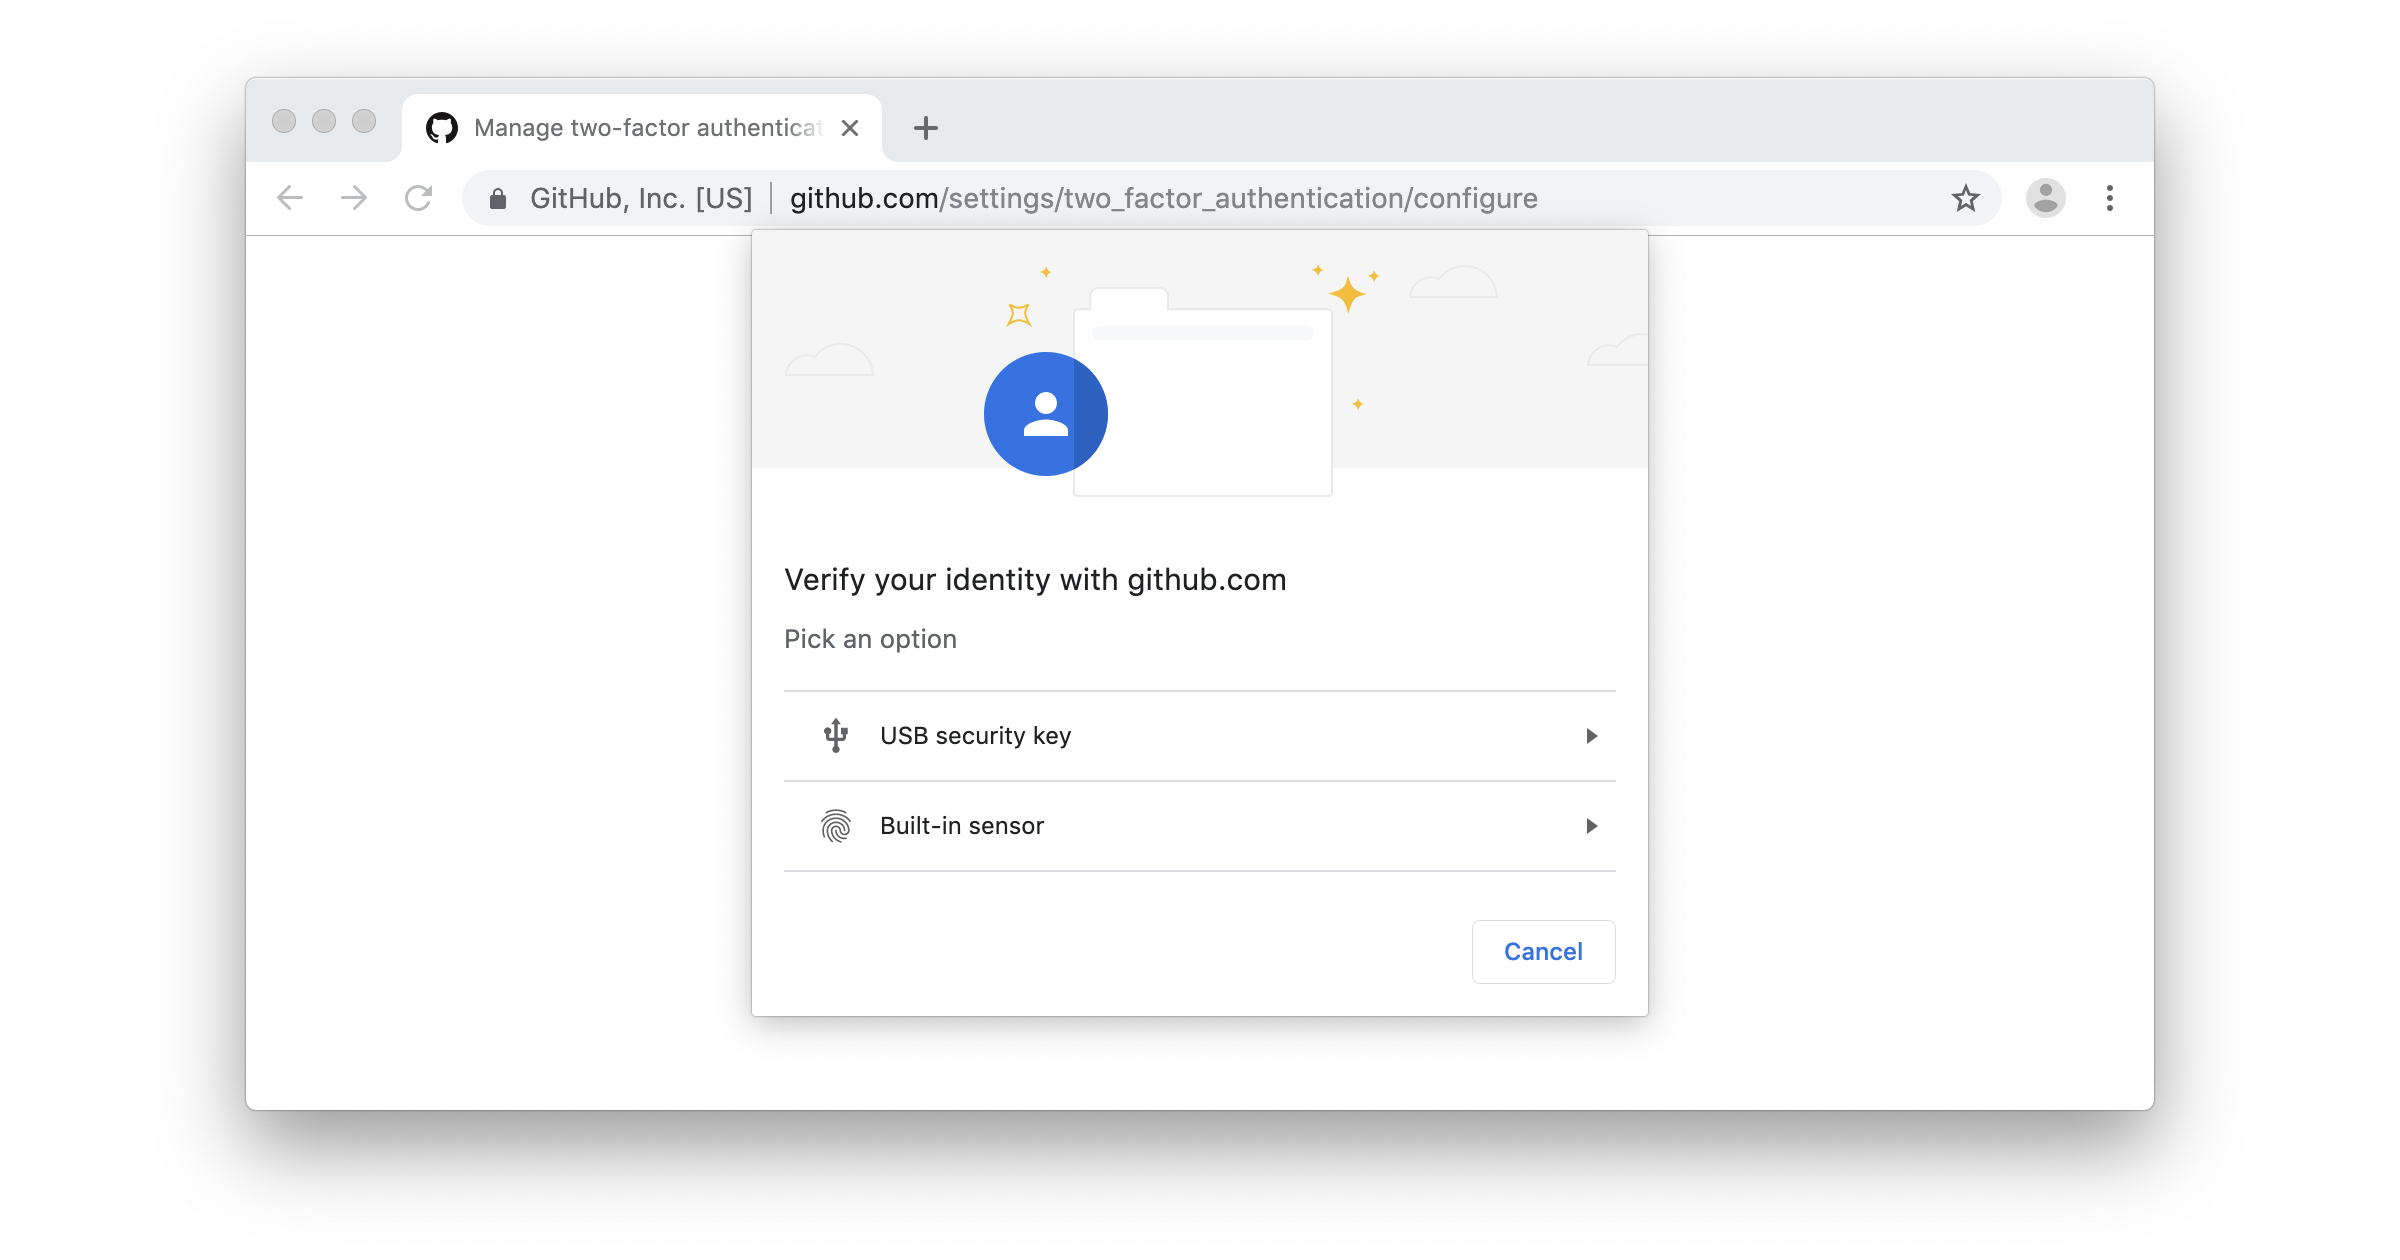 GitHub supports Web Authentication (WebAuthn) for security